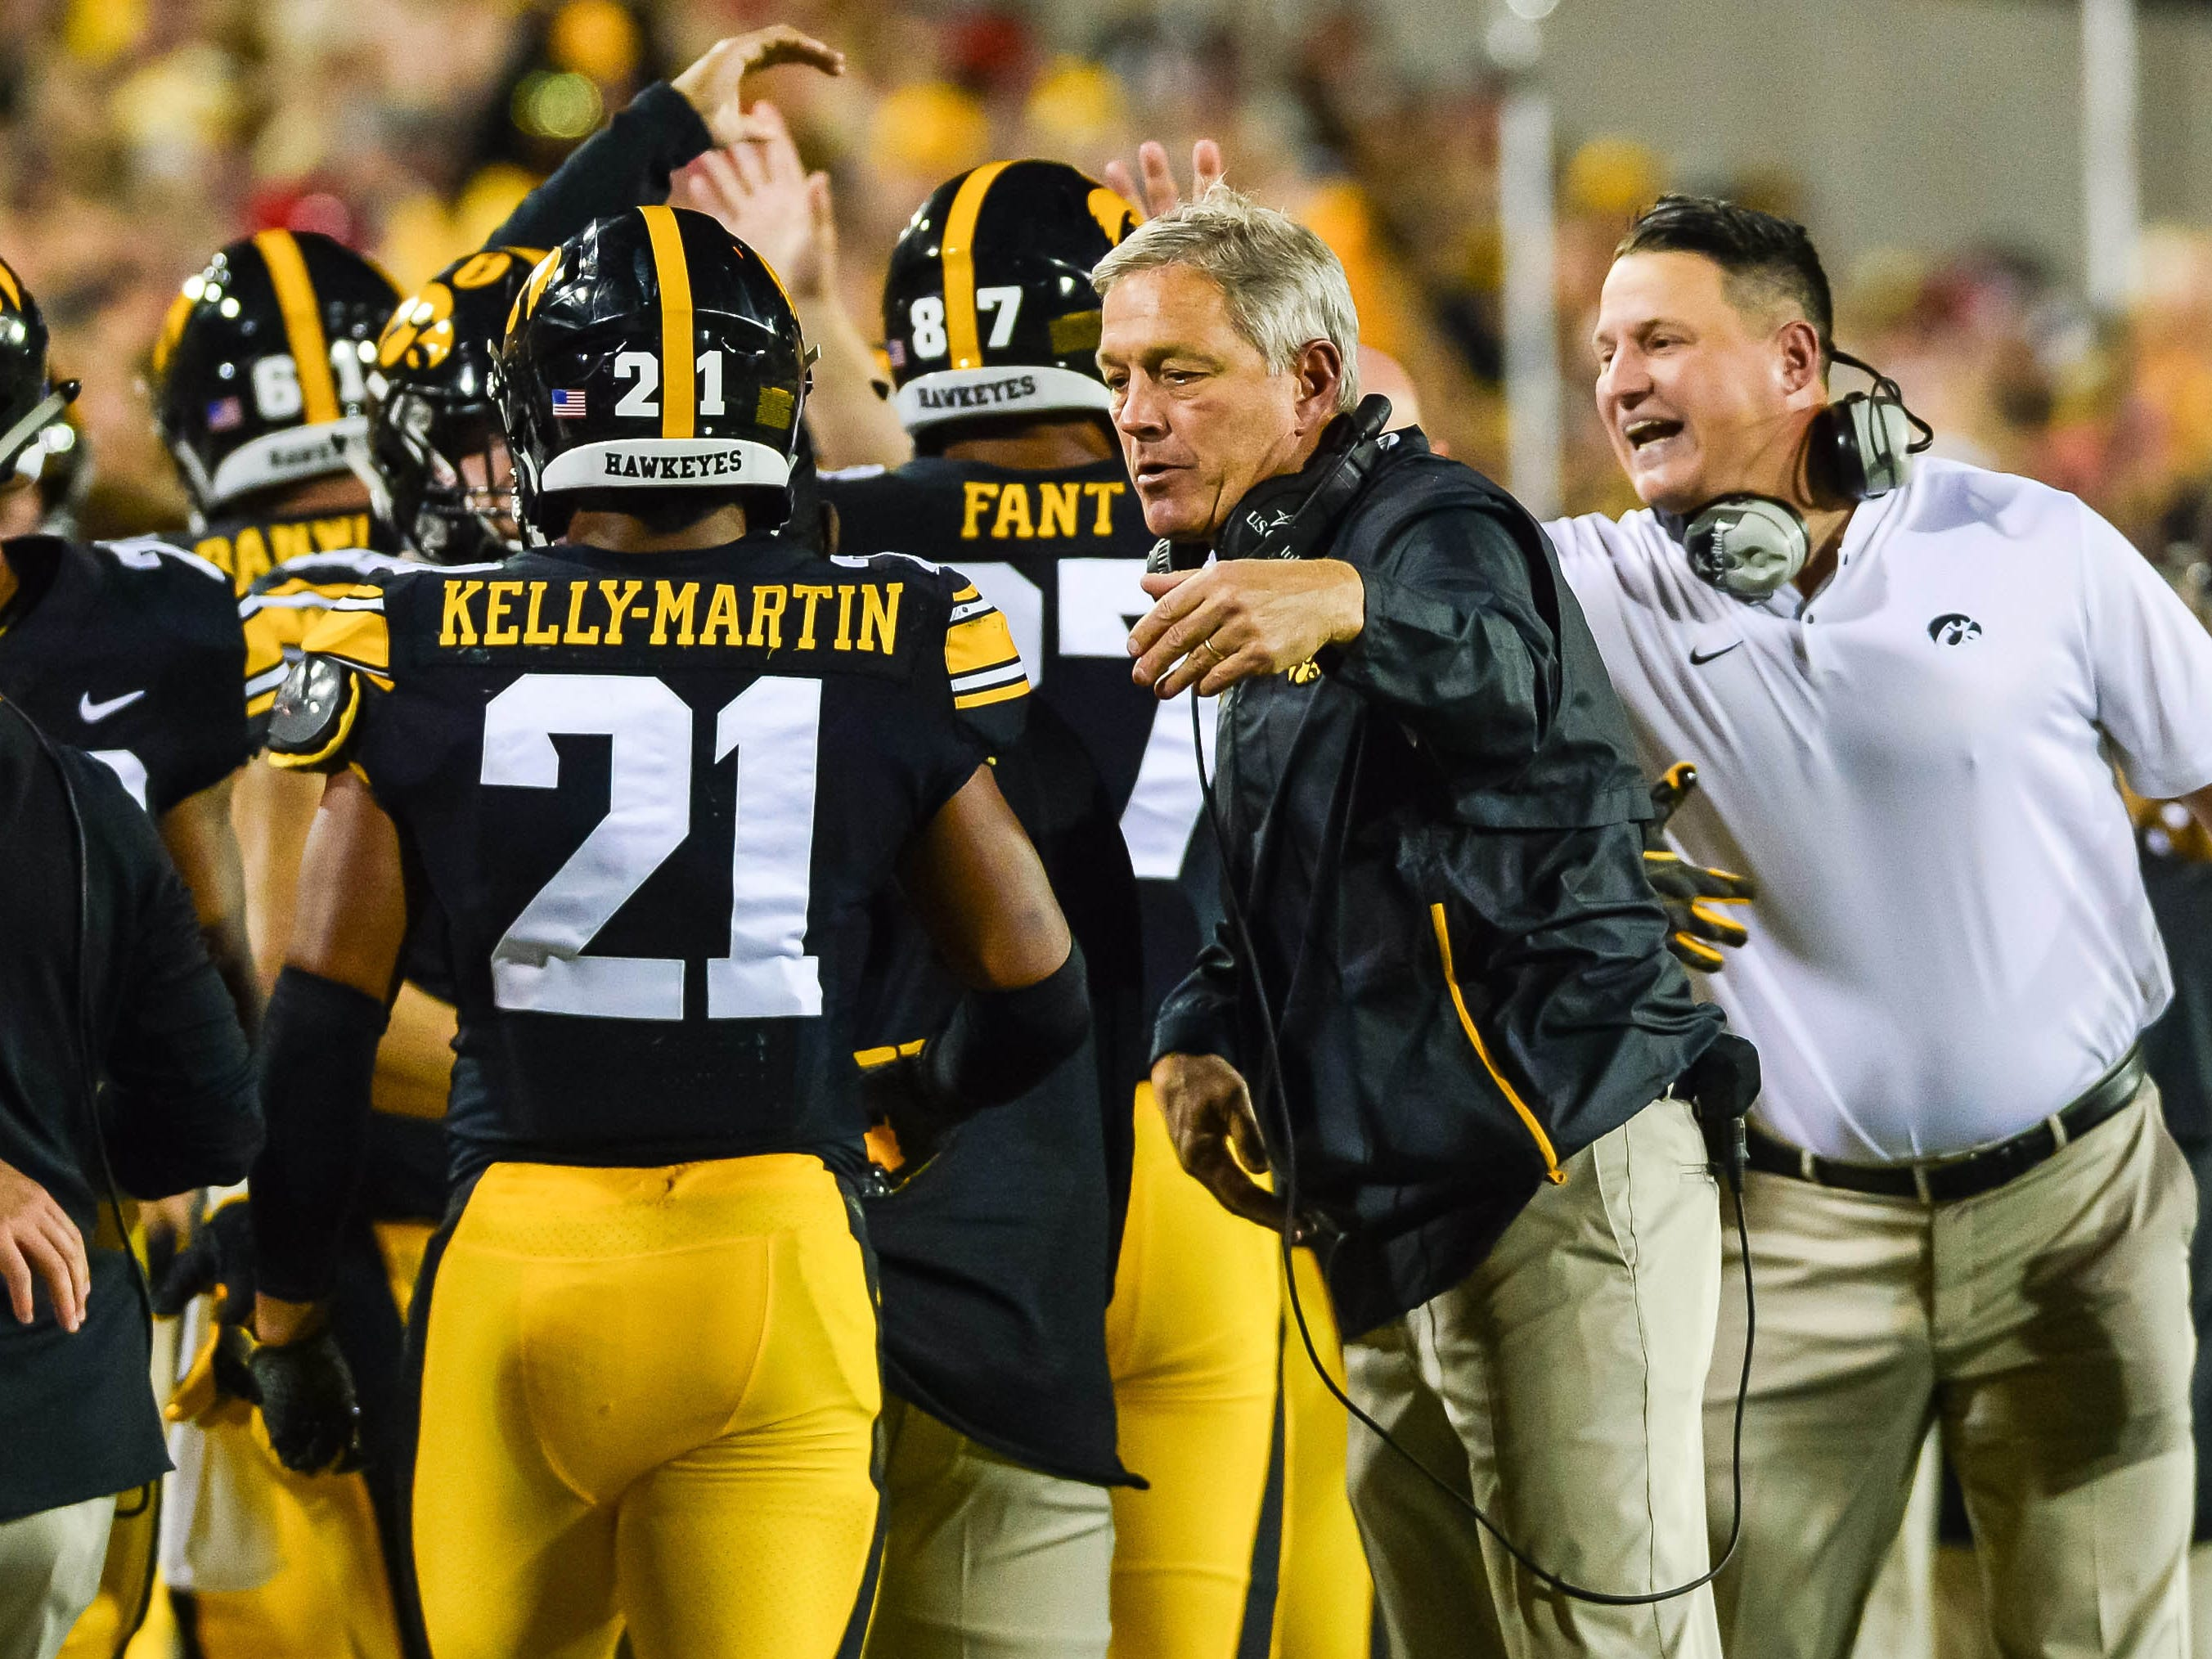 Iowa head coach Kirk Ferentz and assistant coach Brian Ferentz react with running back Ivory Kelly-Martin (21) during the Wisconsin game. The Hawkeyes have tweaked their bye-week routine a little bit with hopes of getting an improved showing over past years.